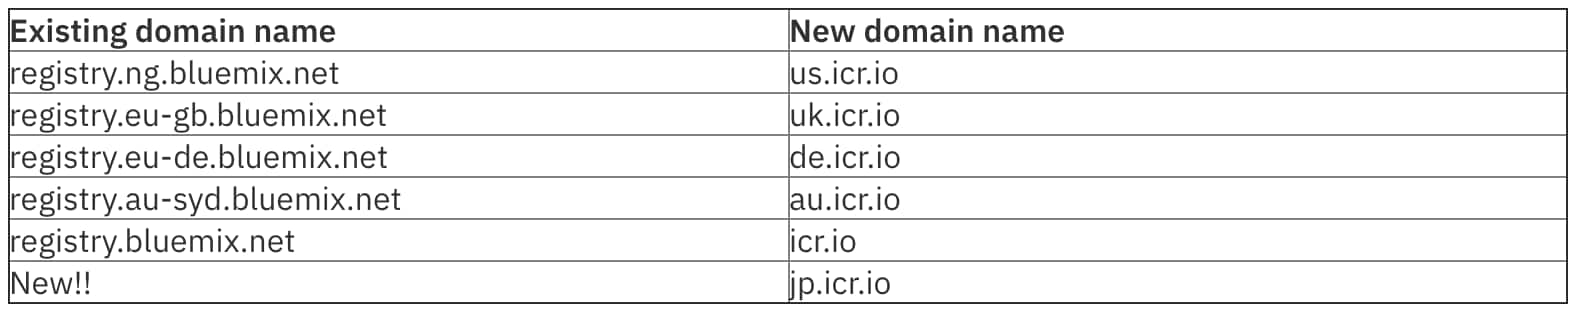 The new domain names are shown by location in the following table